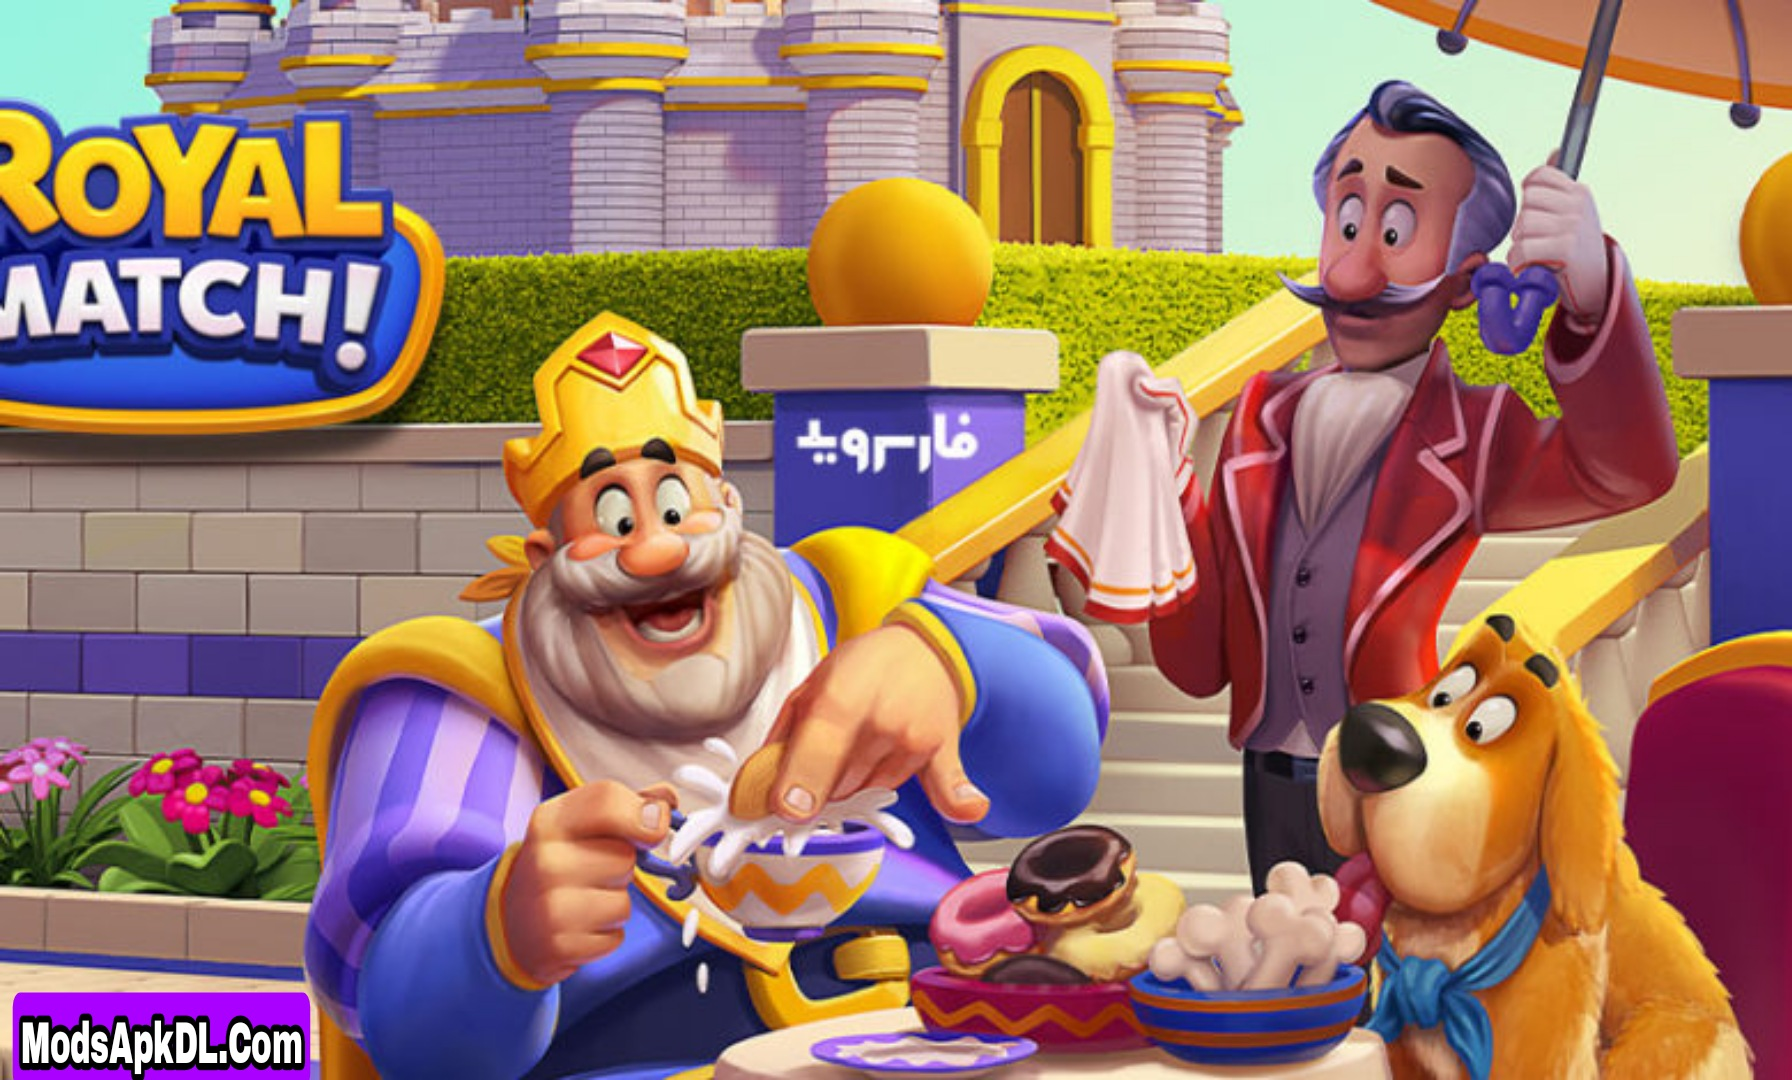 Royal Match Mod APK v4490 Download (Unlimited Stars) For Android